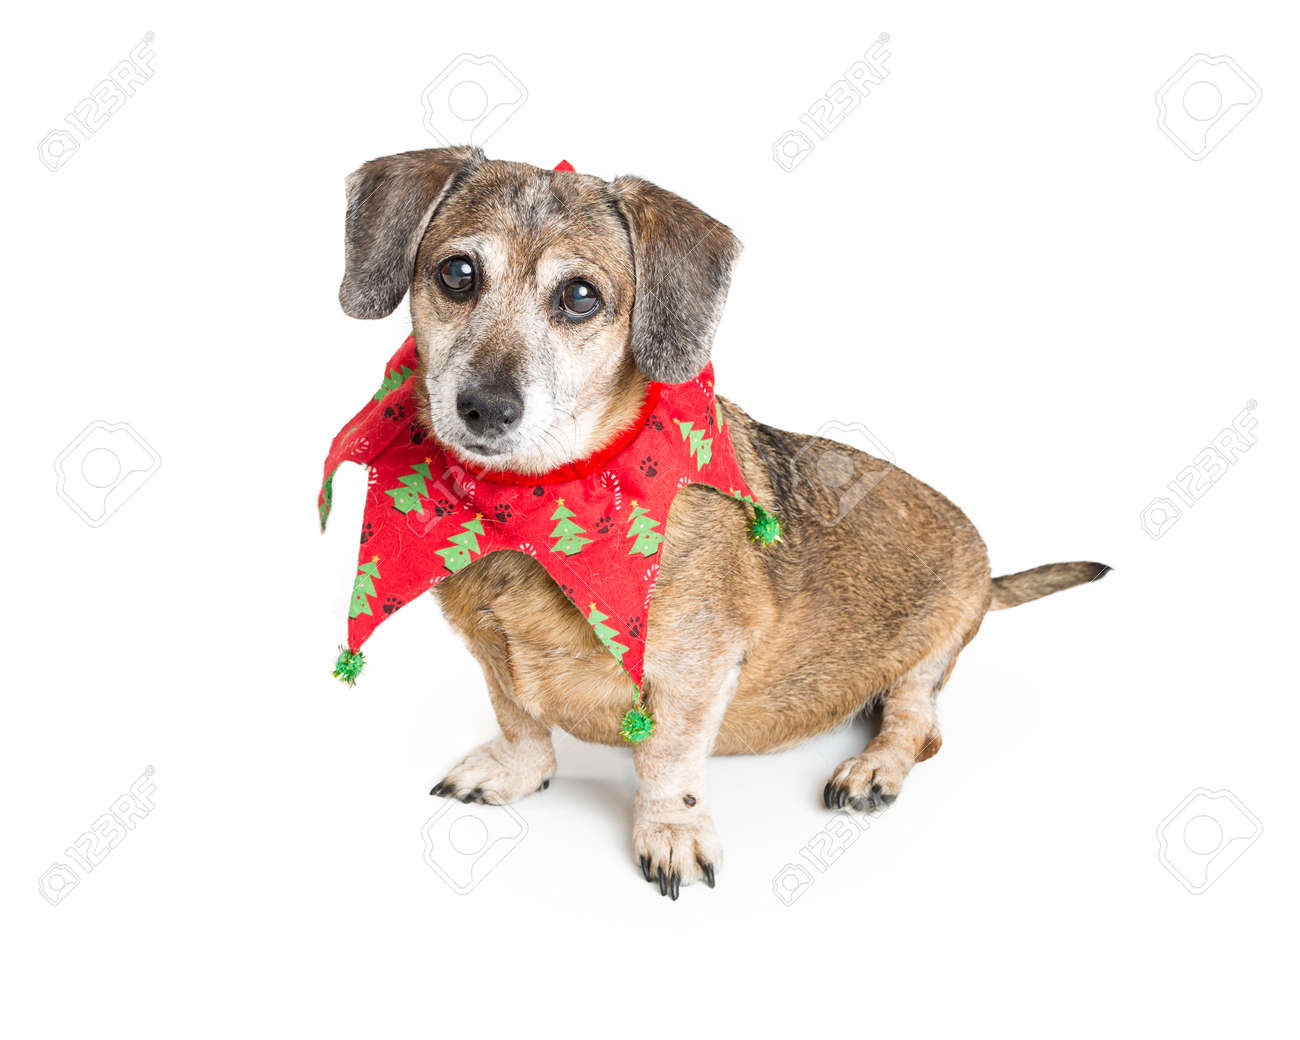 Cute Chihuahua Mixed Breed Dog Wearing Red And Green Christmas